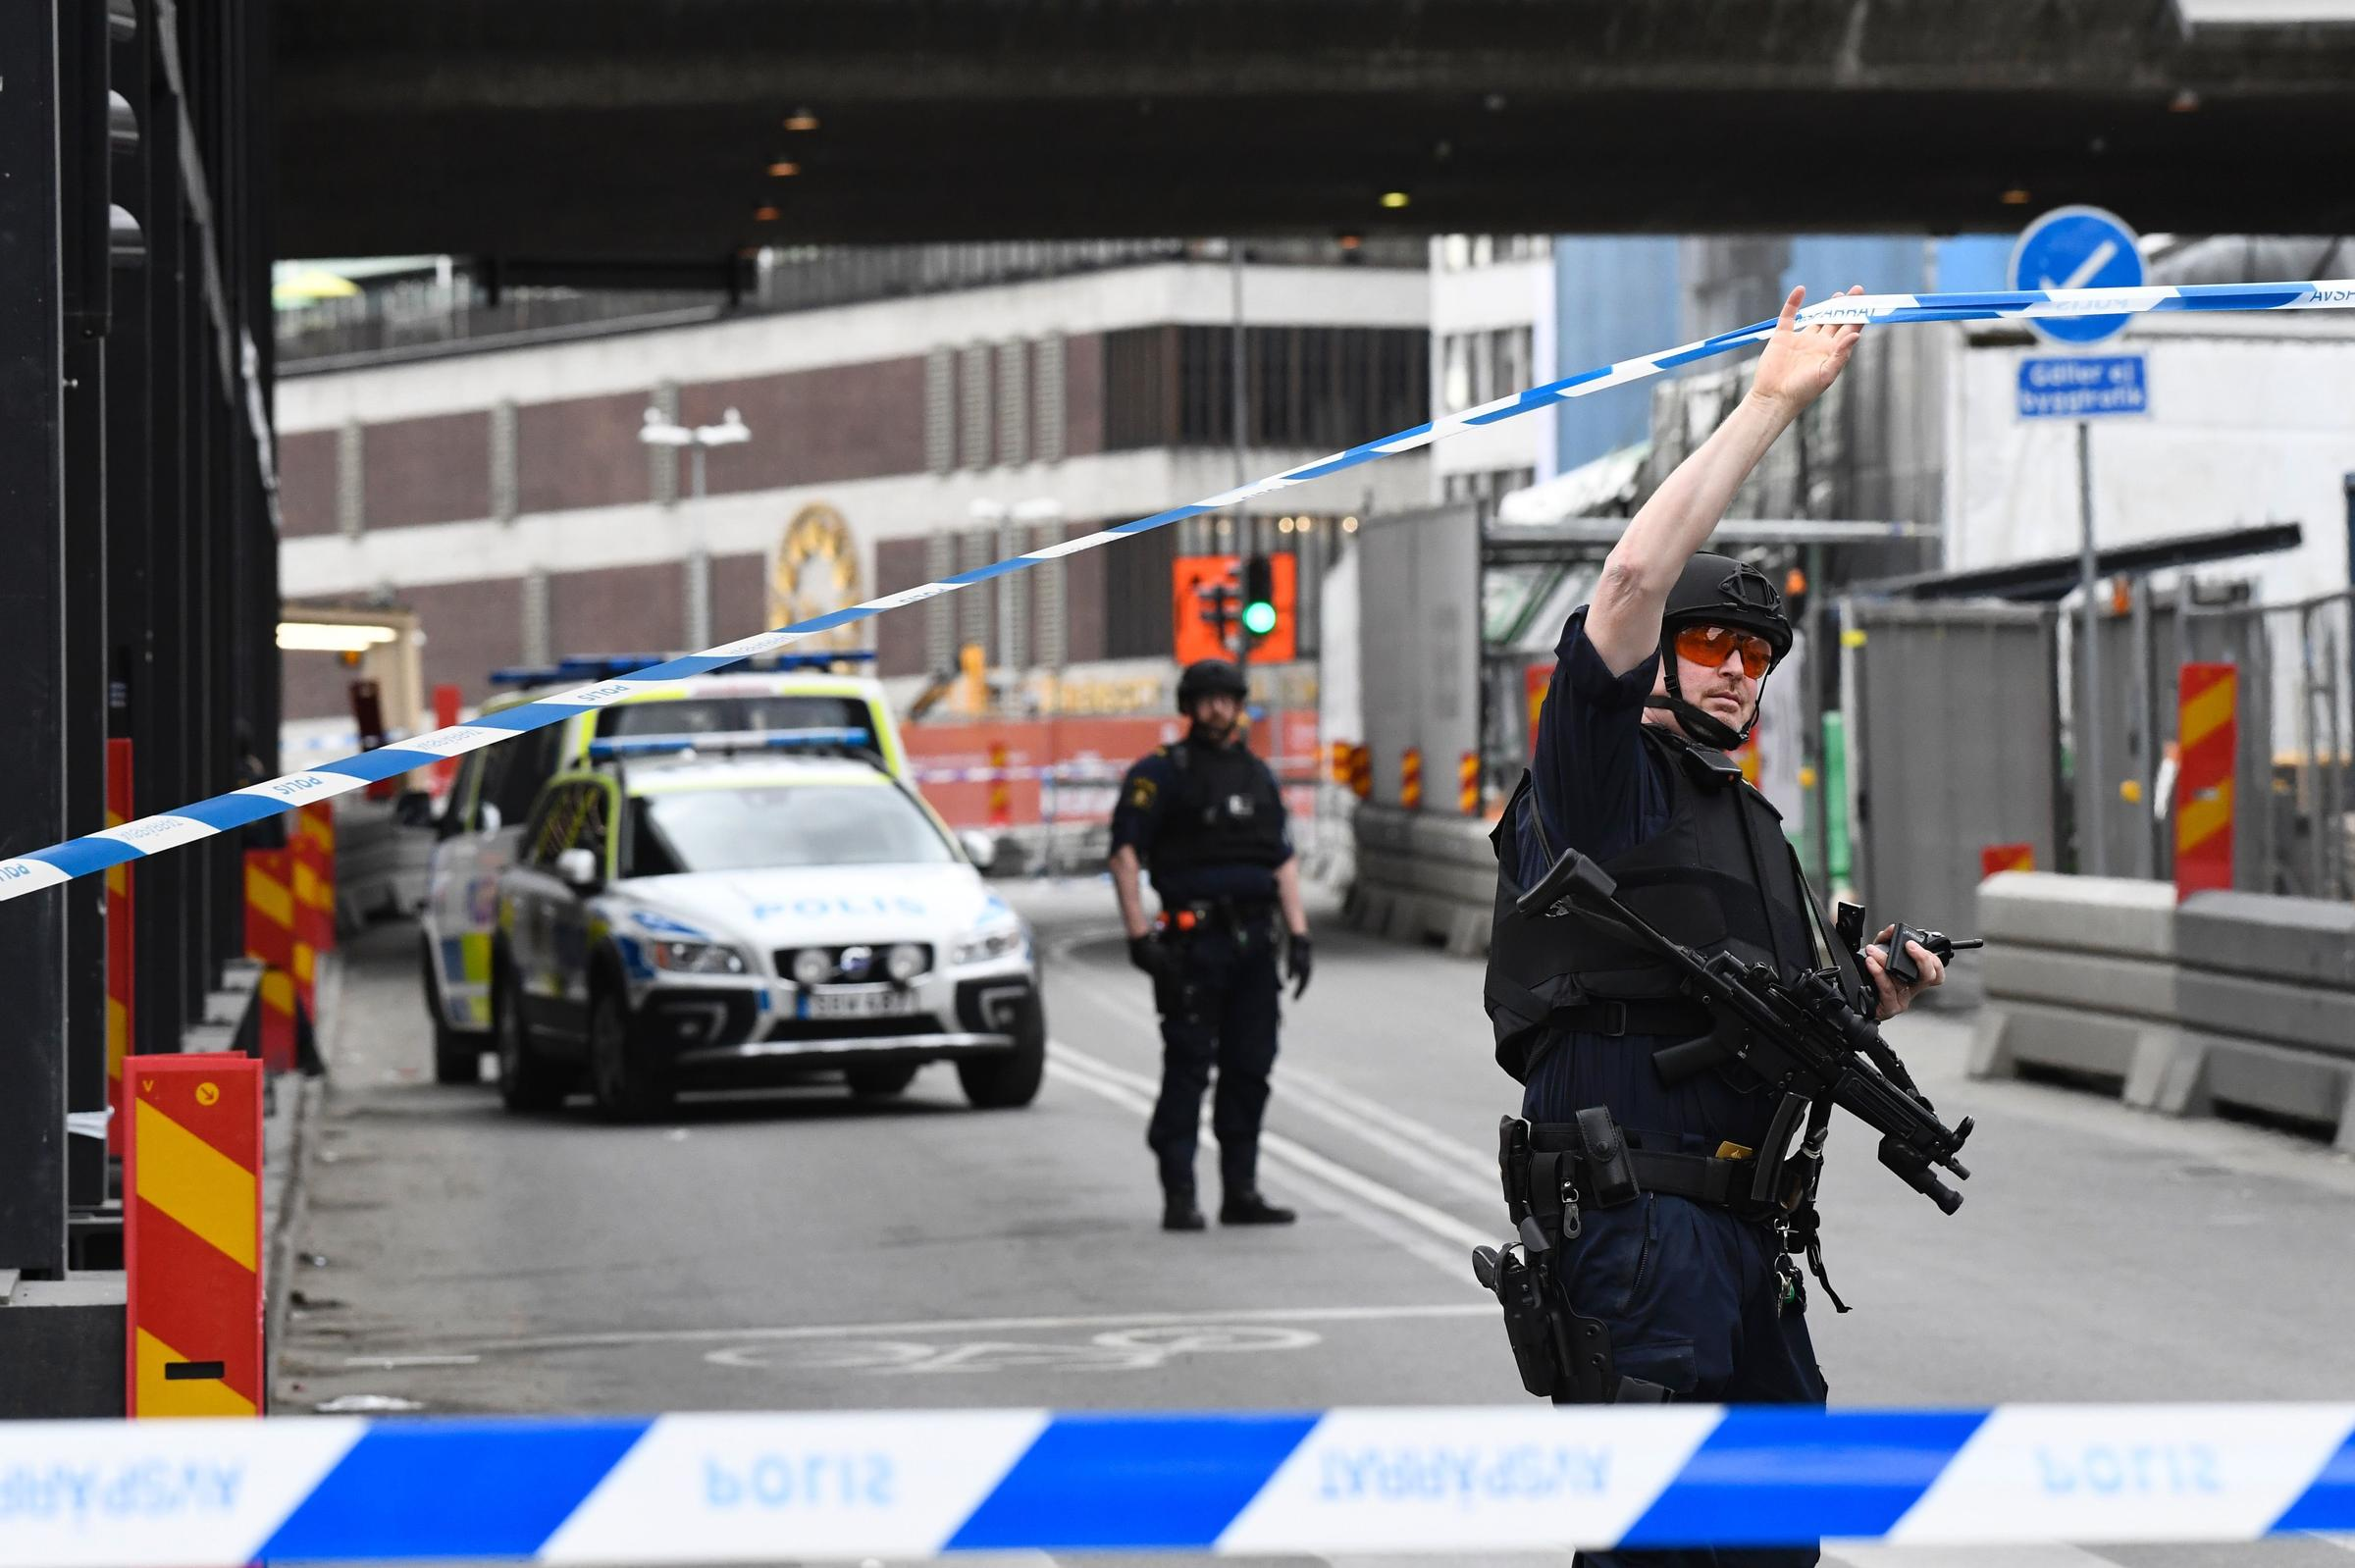 Sweden truck attack suspect 39-year-old Uzbekistan-born man